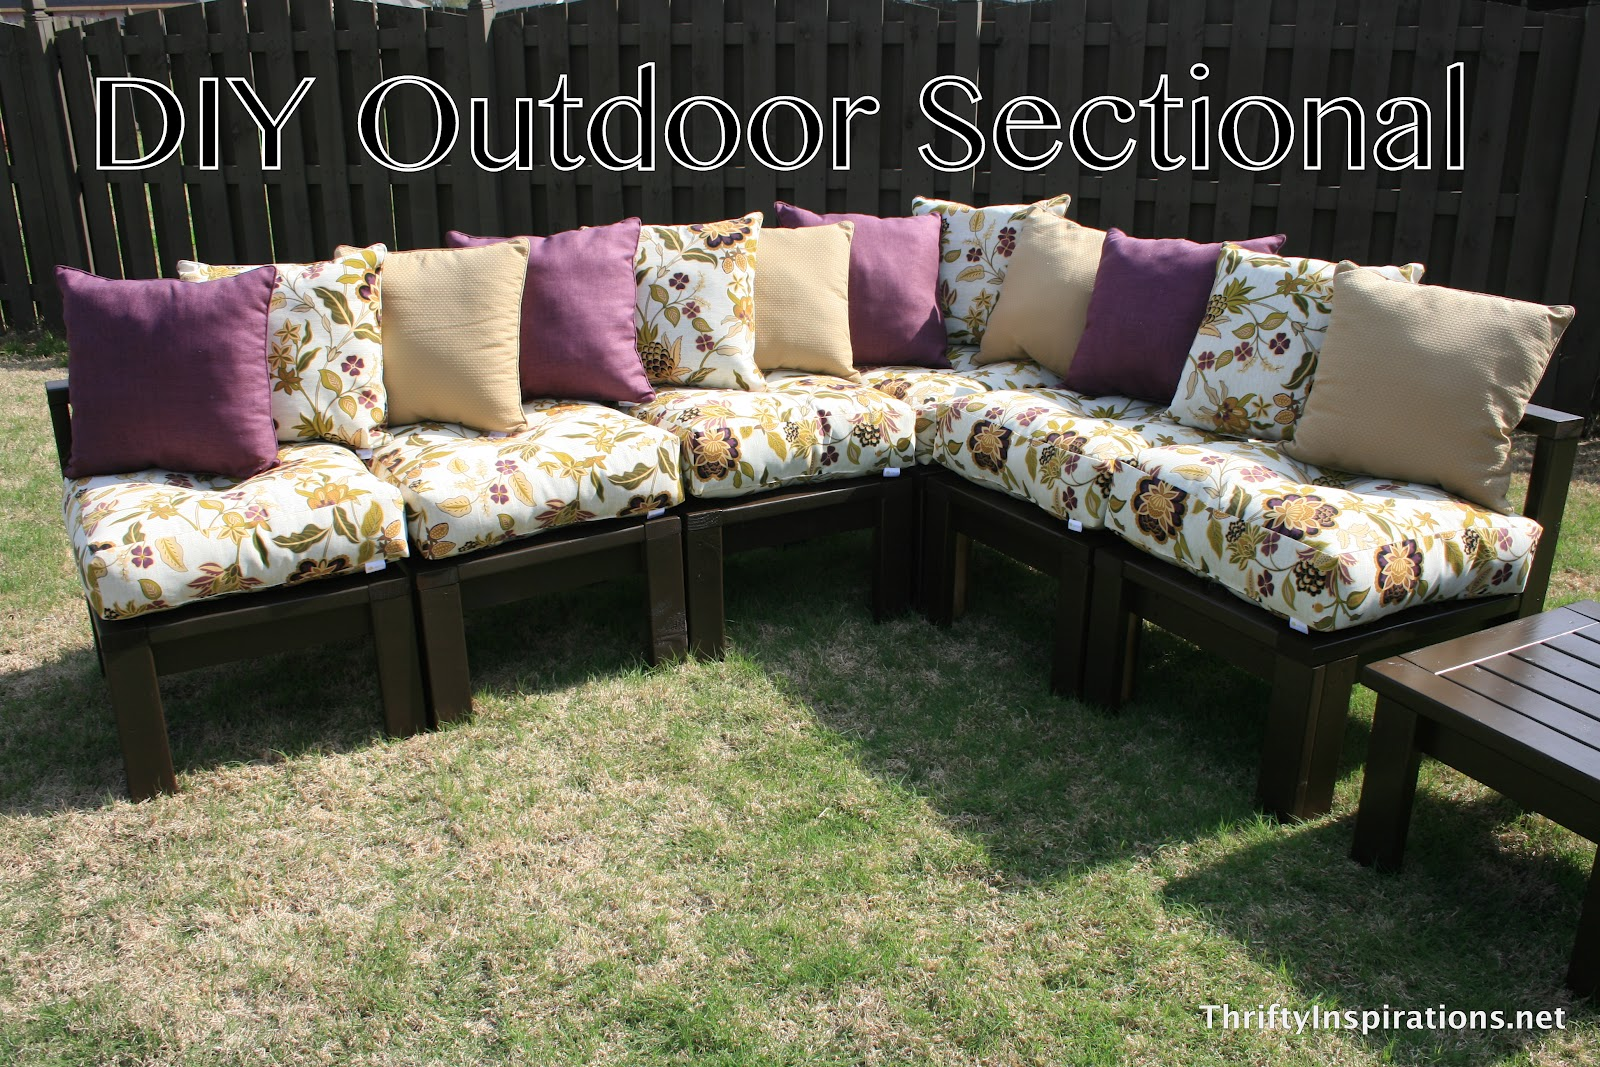 Amazing Diy Outdoor Deck With Diy Home Outdoor Projects Outdoor Sectional Patio Furniture By